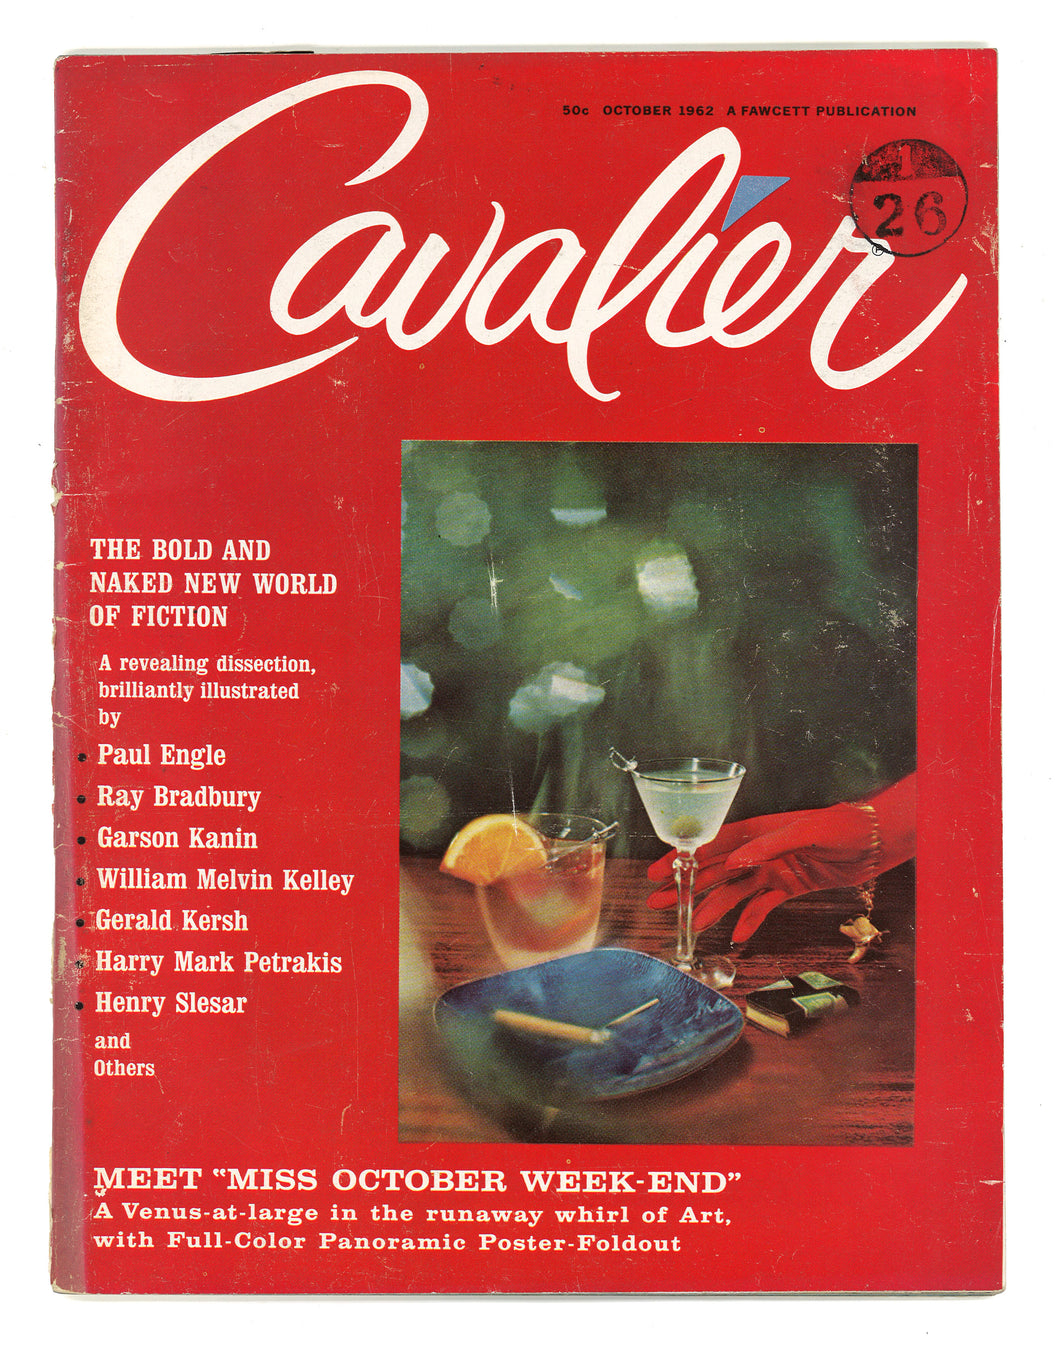 Cavalier Vol 12 No 112 Oct 1962